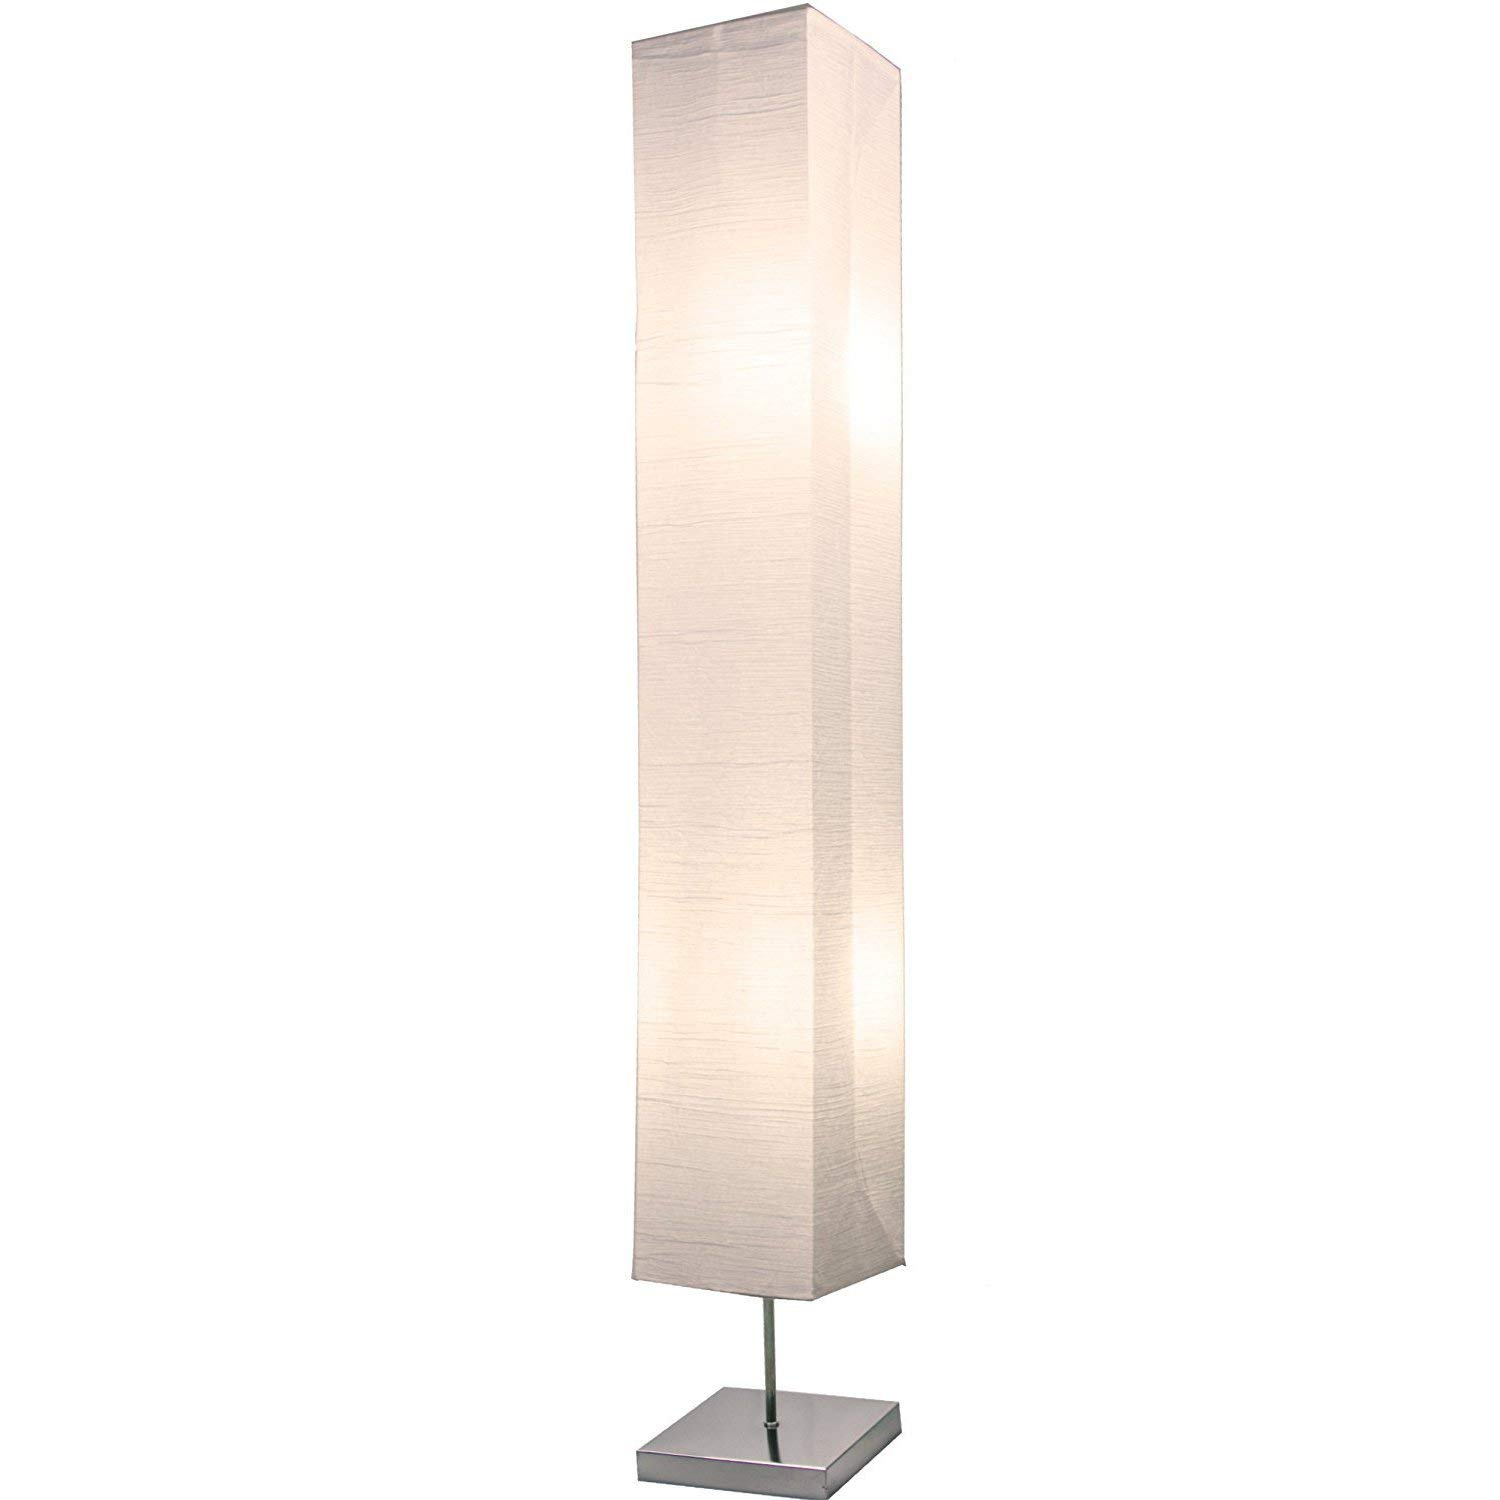 Light Accents HONORS Floor Lamp - Japanese Style Standing Lamps for bedrooms 50 Inches Tall with White Paper Shade - Floor Lamps for Living Room